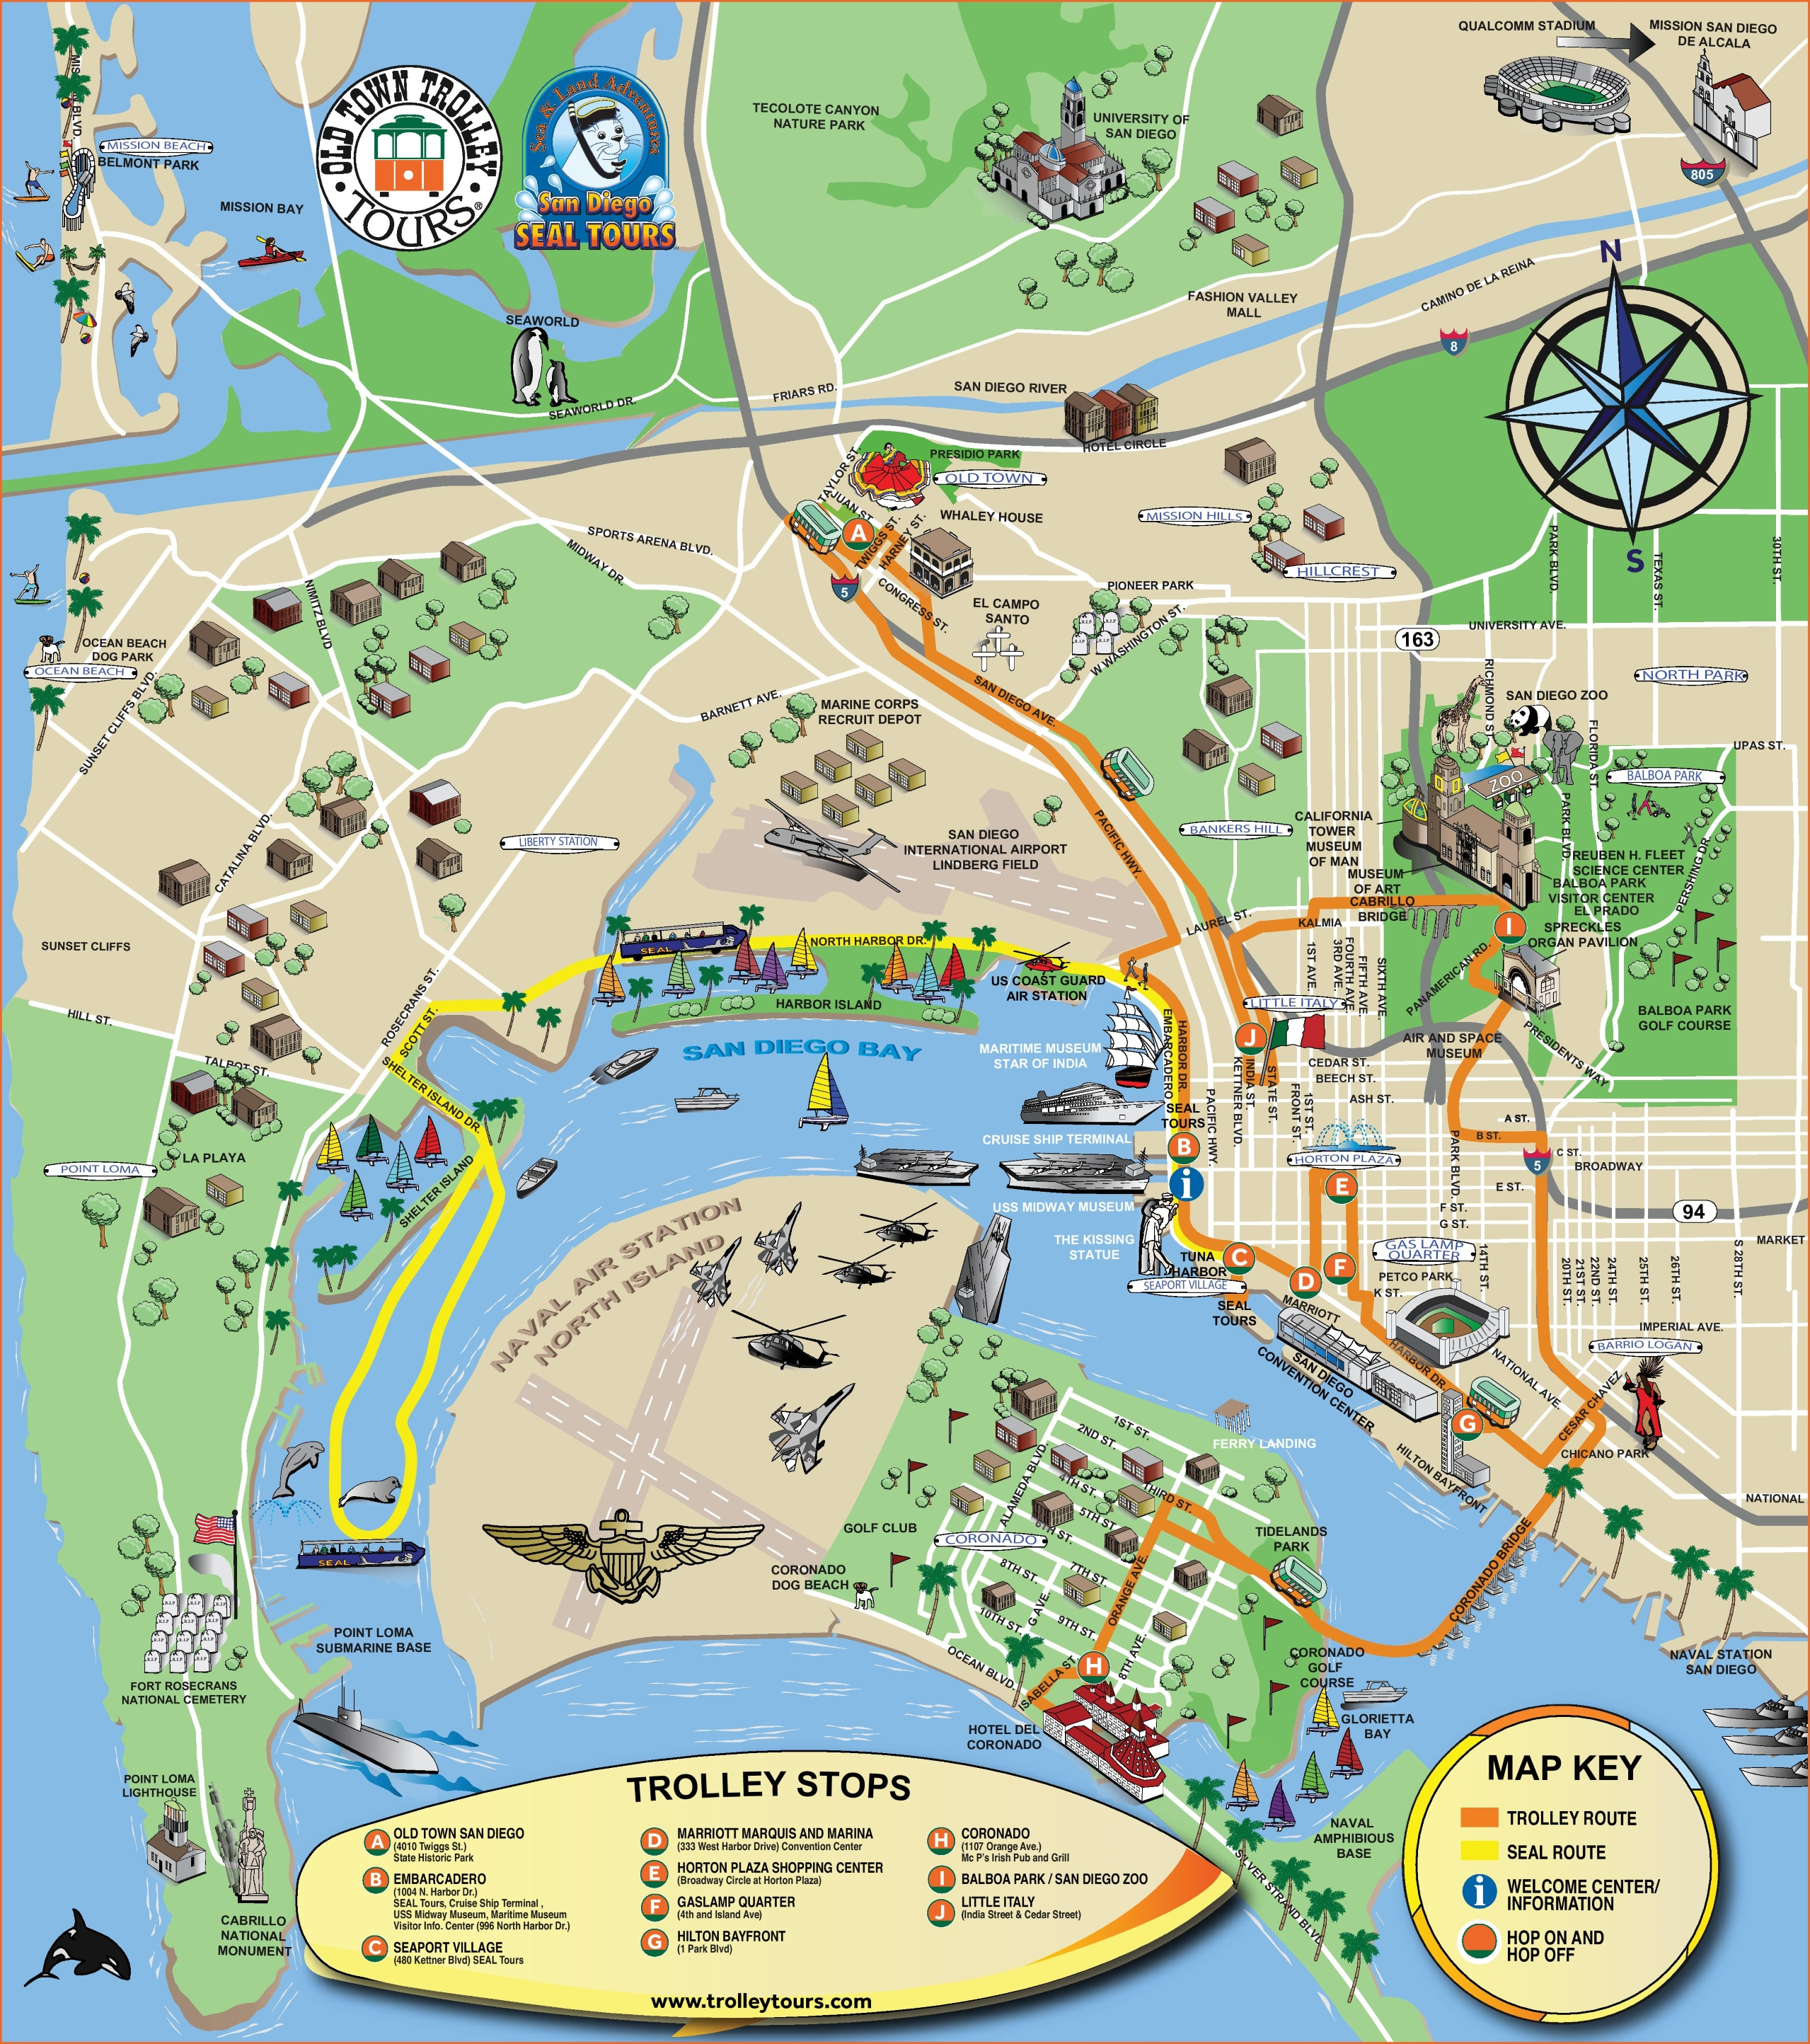 San Diego Tourist Attractions Map - San Diego Attractions Map Printable